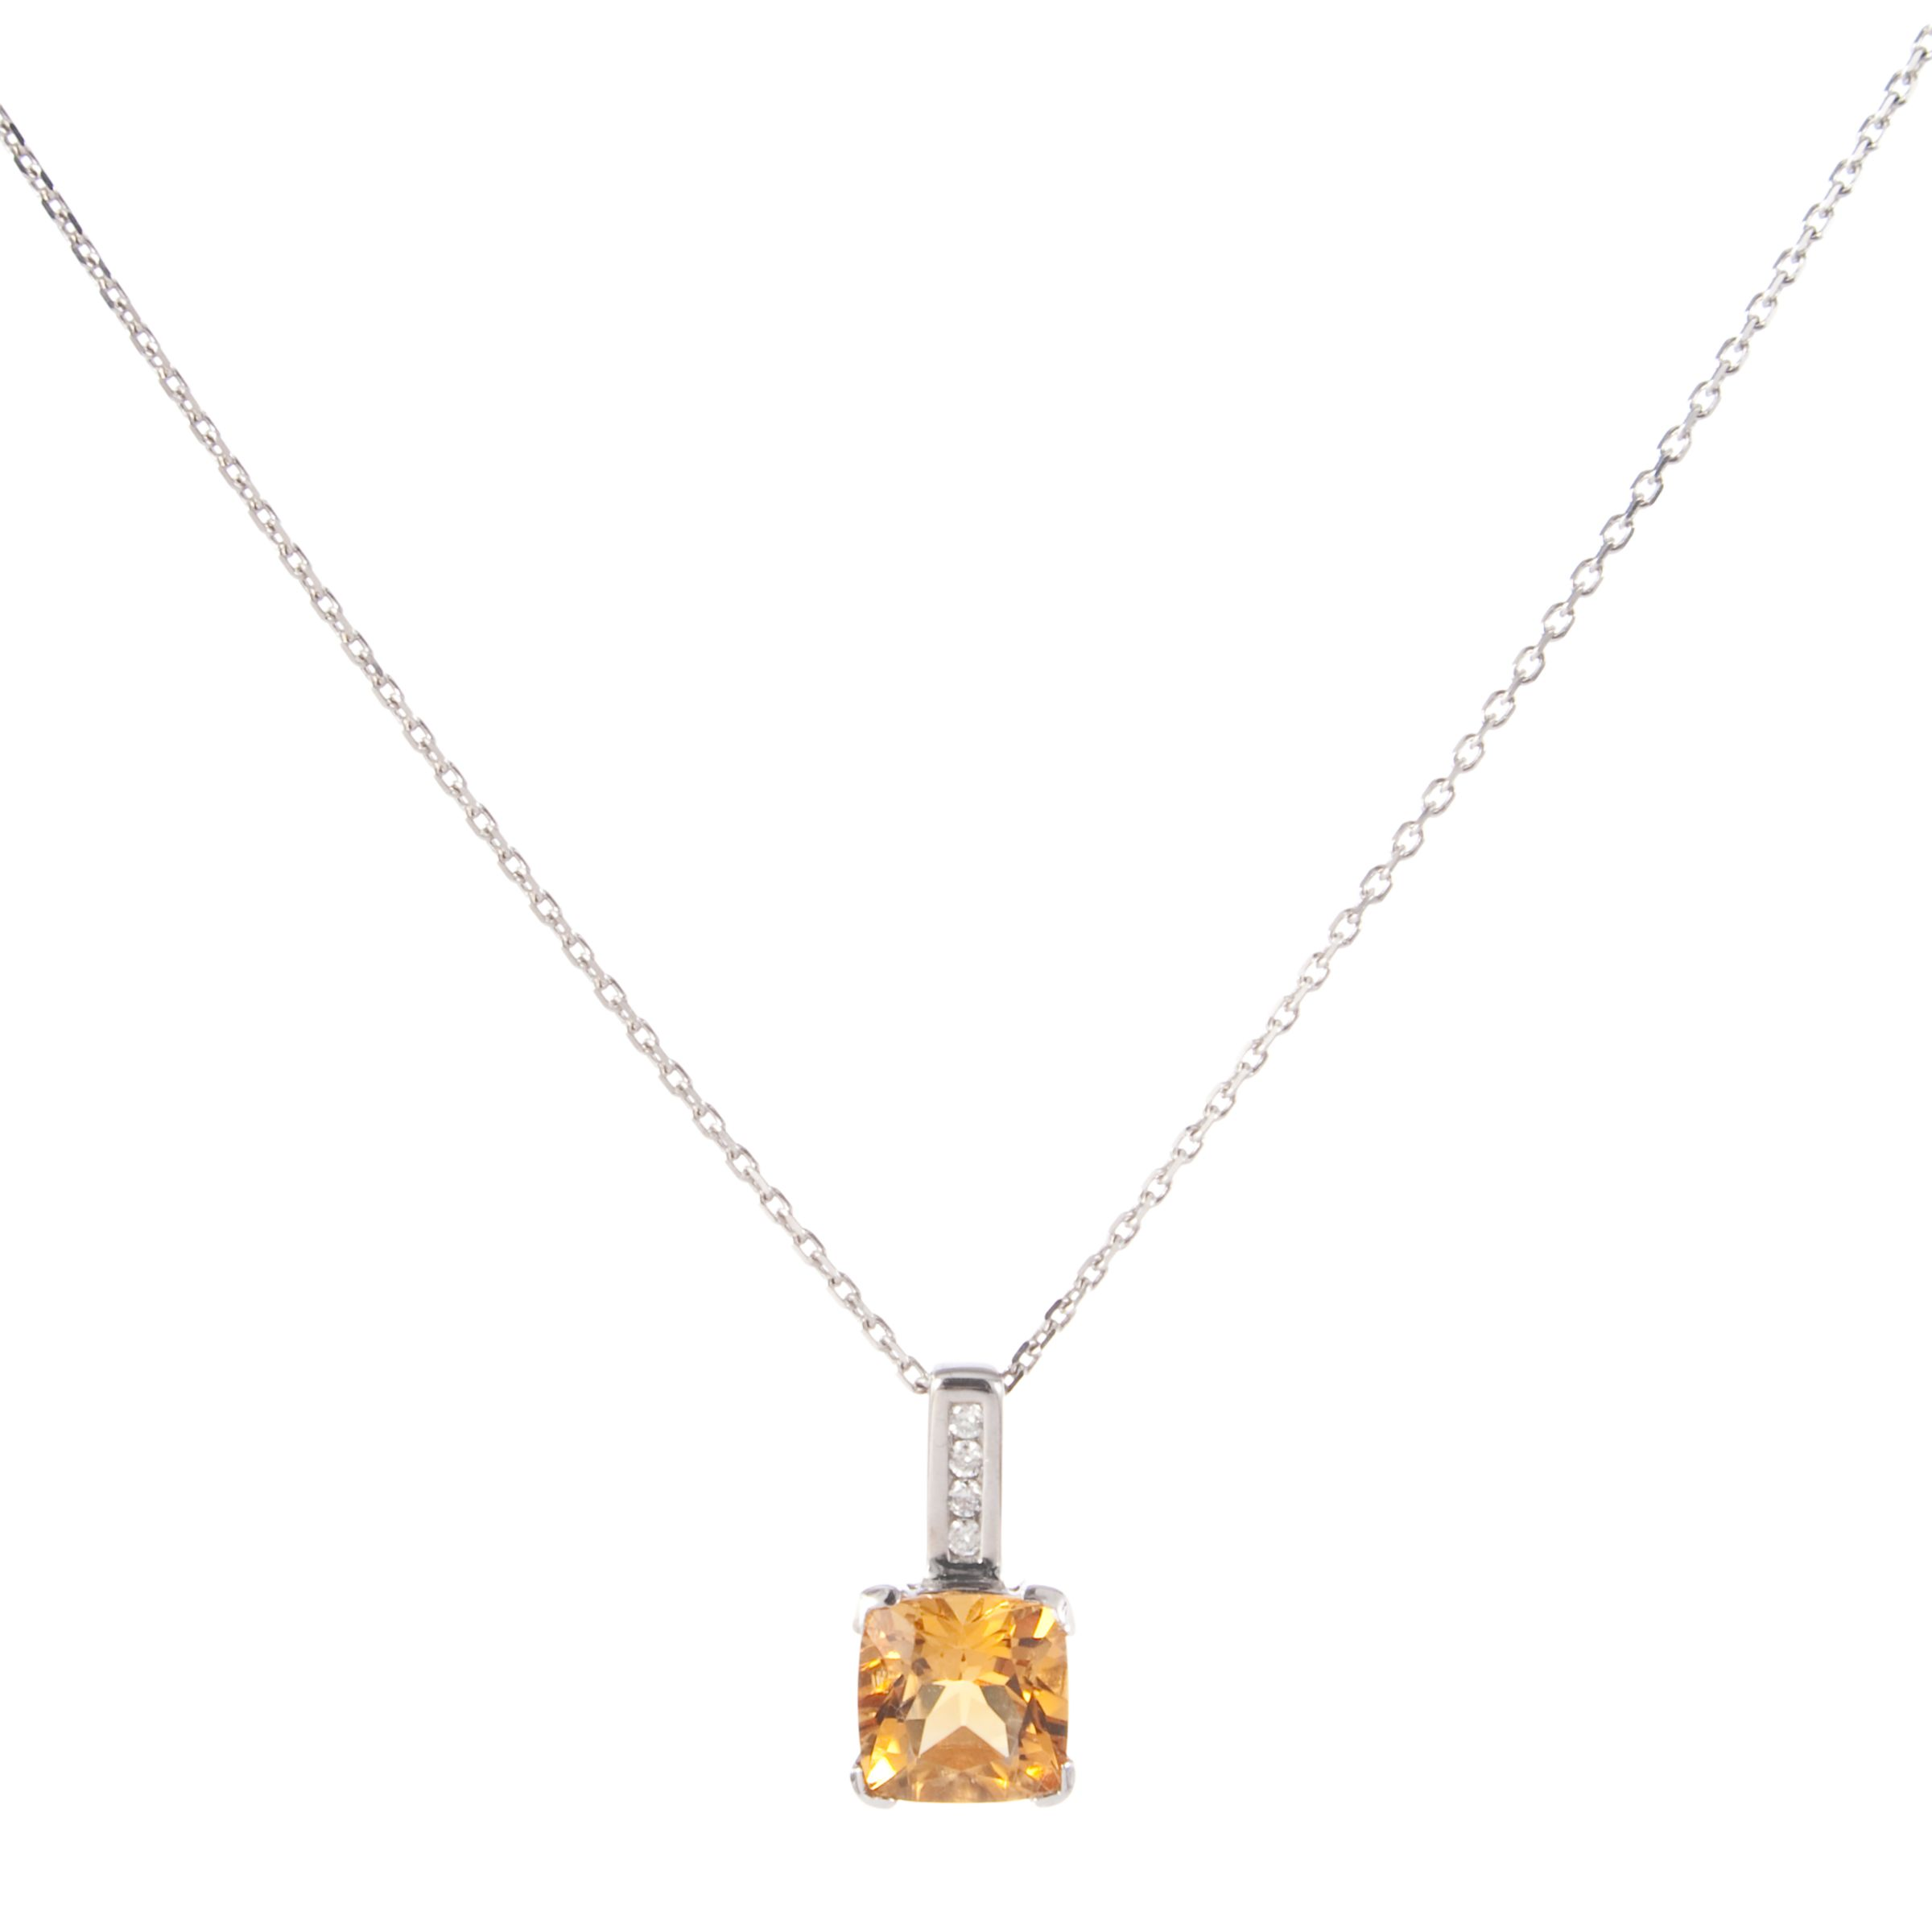 White Gold Cushion Cut Citrine Pendant with Diamond Bar Necklace